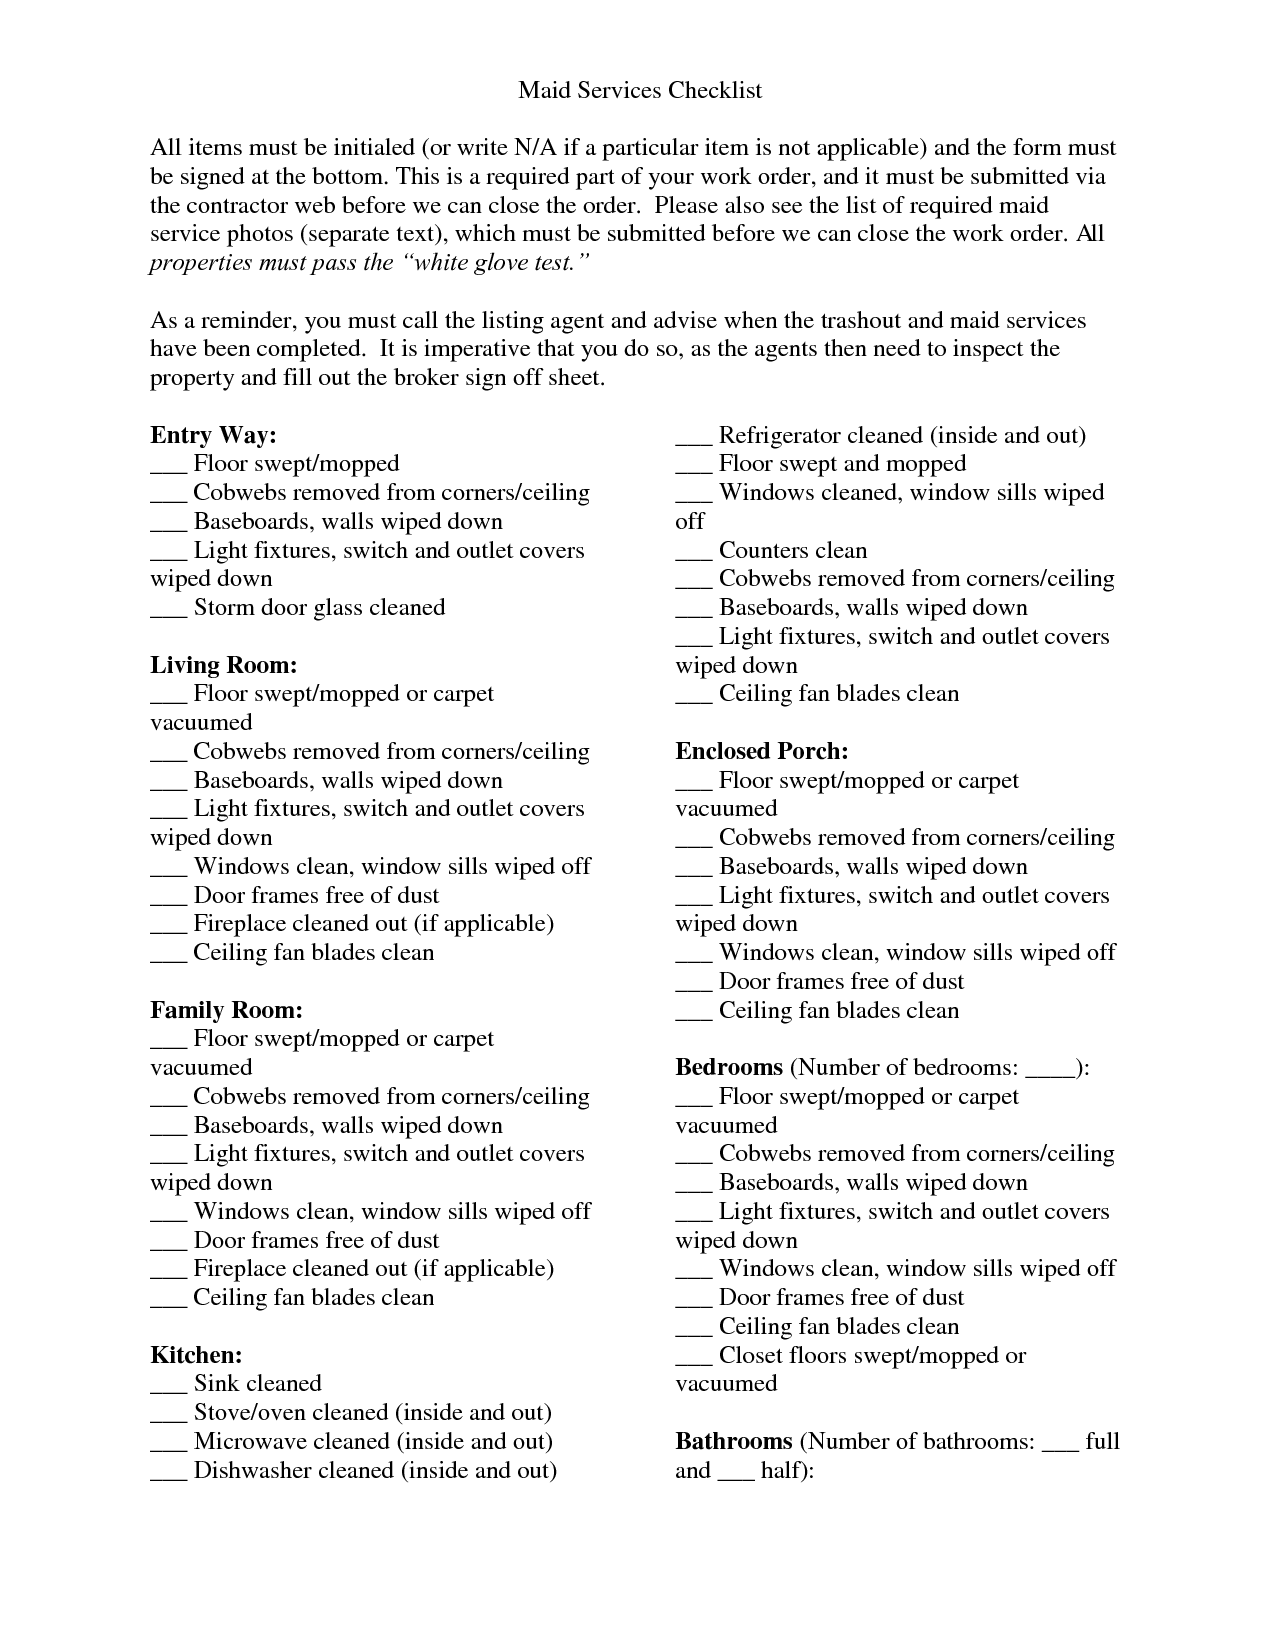 Bathroom Sign Off Sheet Cleaning actual maid service cleaning checklist | homemaking 101